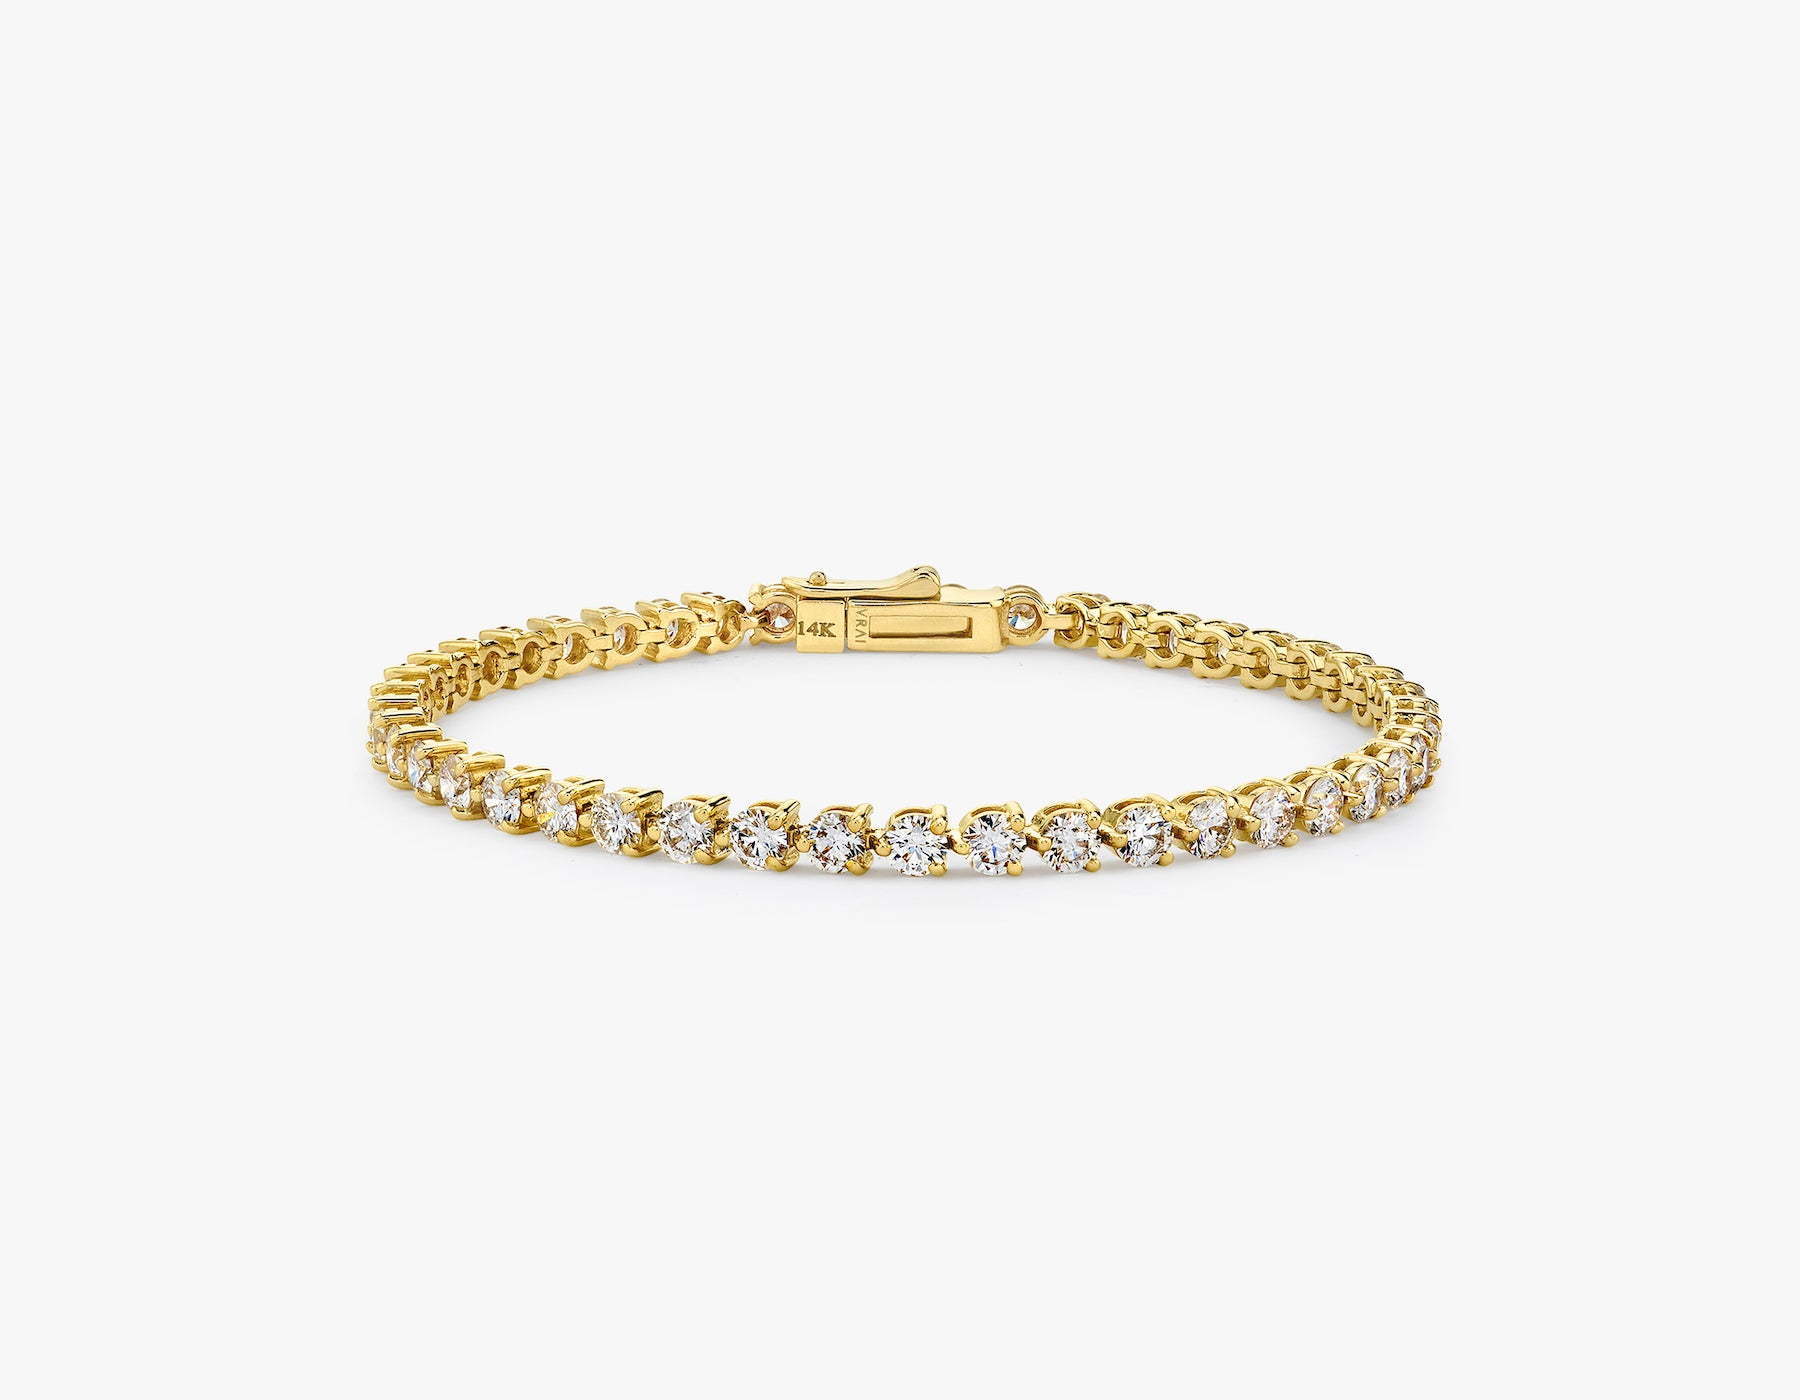 Vrai simple elegant Round Brilliant Diamond Tennis Bracelet with .10ct stone, 14K Yellow Gold